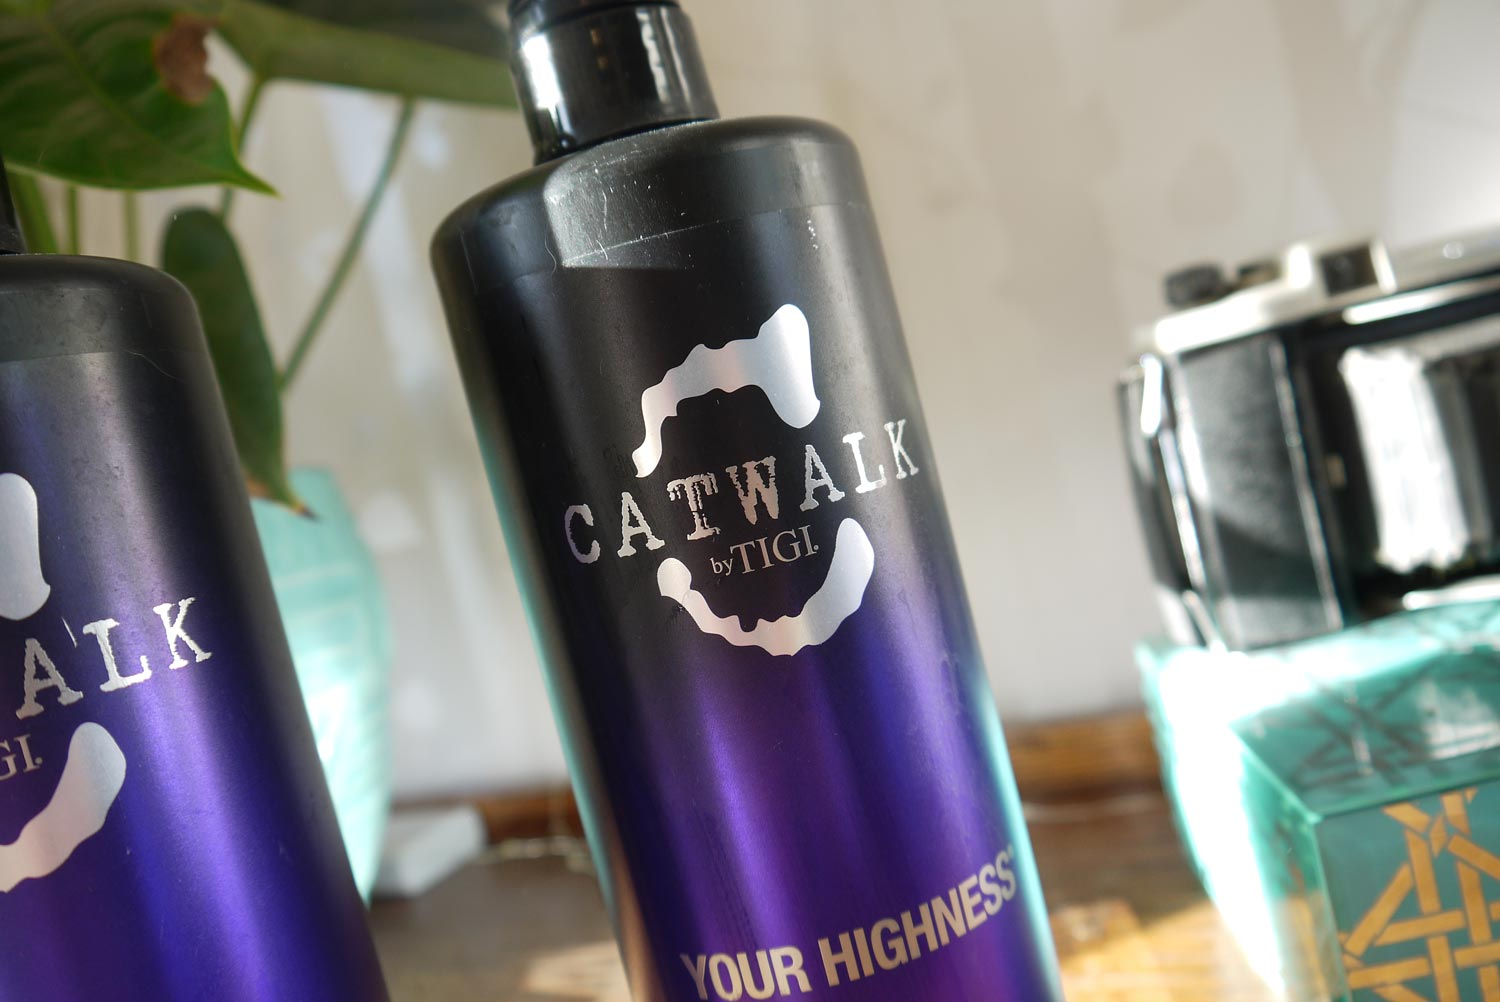 catwalk-your-highness-shampoo-and-conditioner-review.jpg